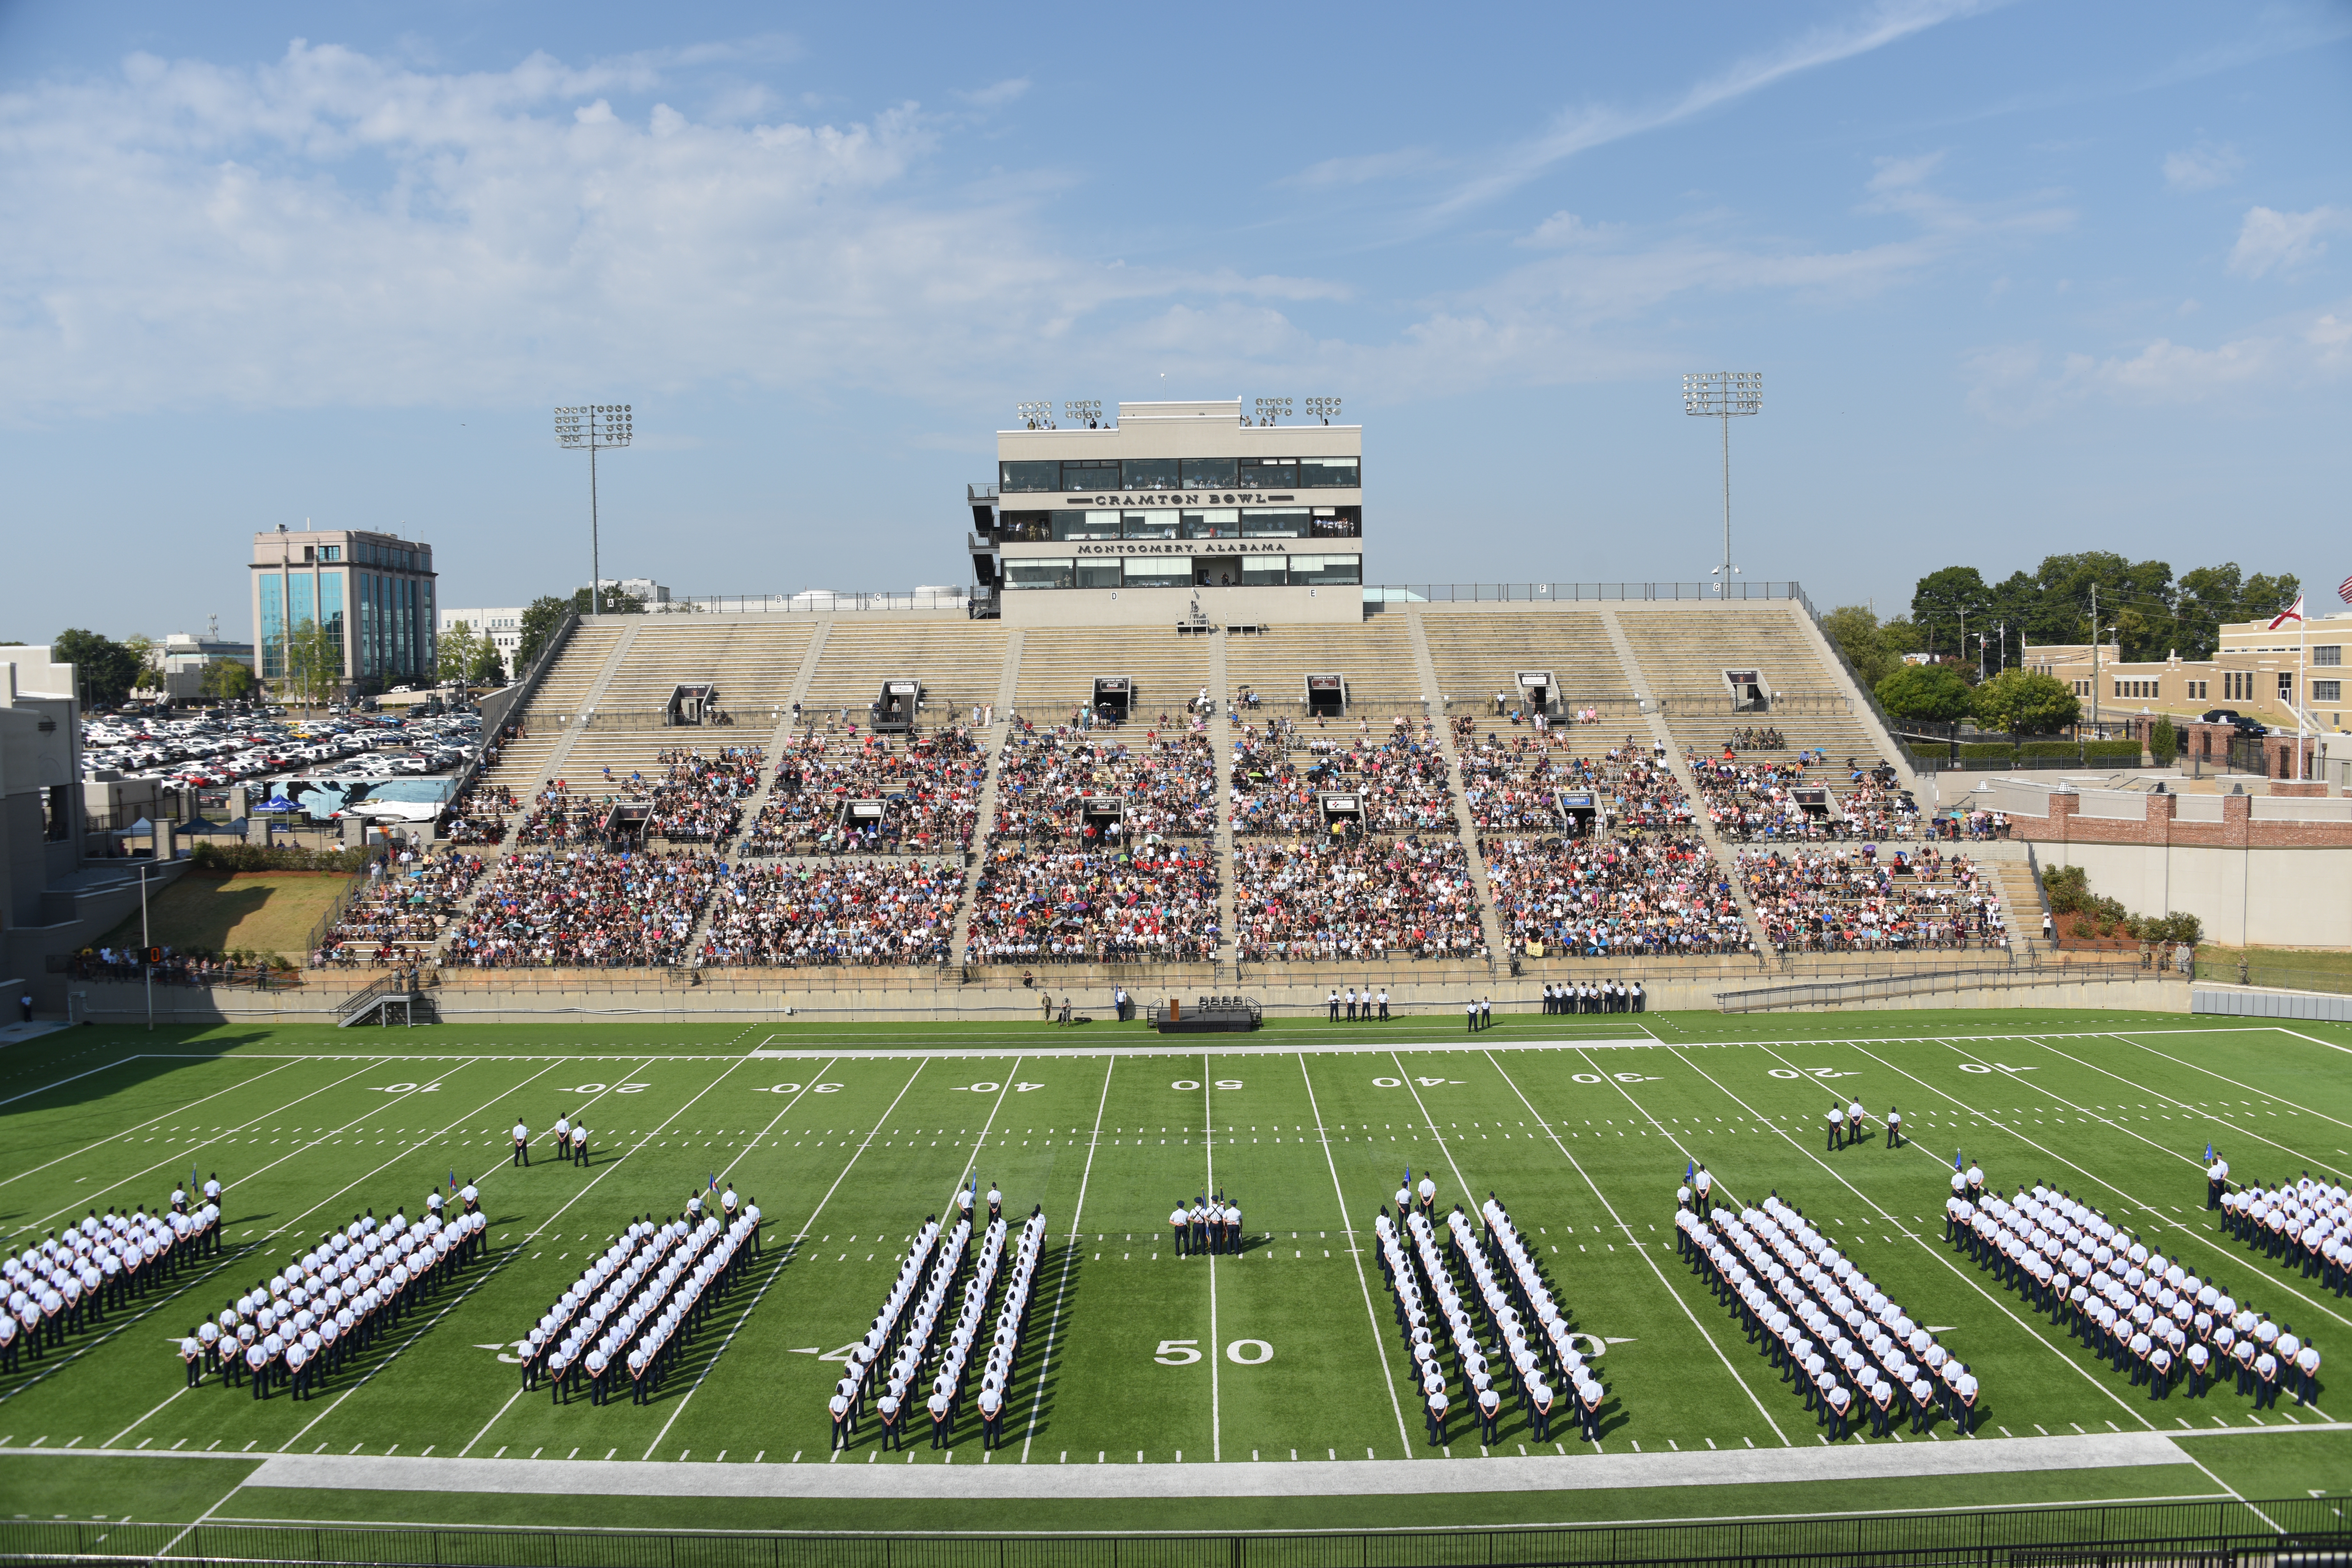 """The Air Force's newest commissioned officers from the Officer Training School class 19-07 form up on the Cramton Bowl football field Sept. 27, 2019, Montgomery, Alabama.Officer Training School's class 19-07, also known as """"Godzilla Class,"""" was comprised of 800 officer trainees and warranted a graduation venue off-base. (Staff Sgt. Quay Drawdy/Air Force)"""